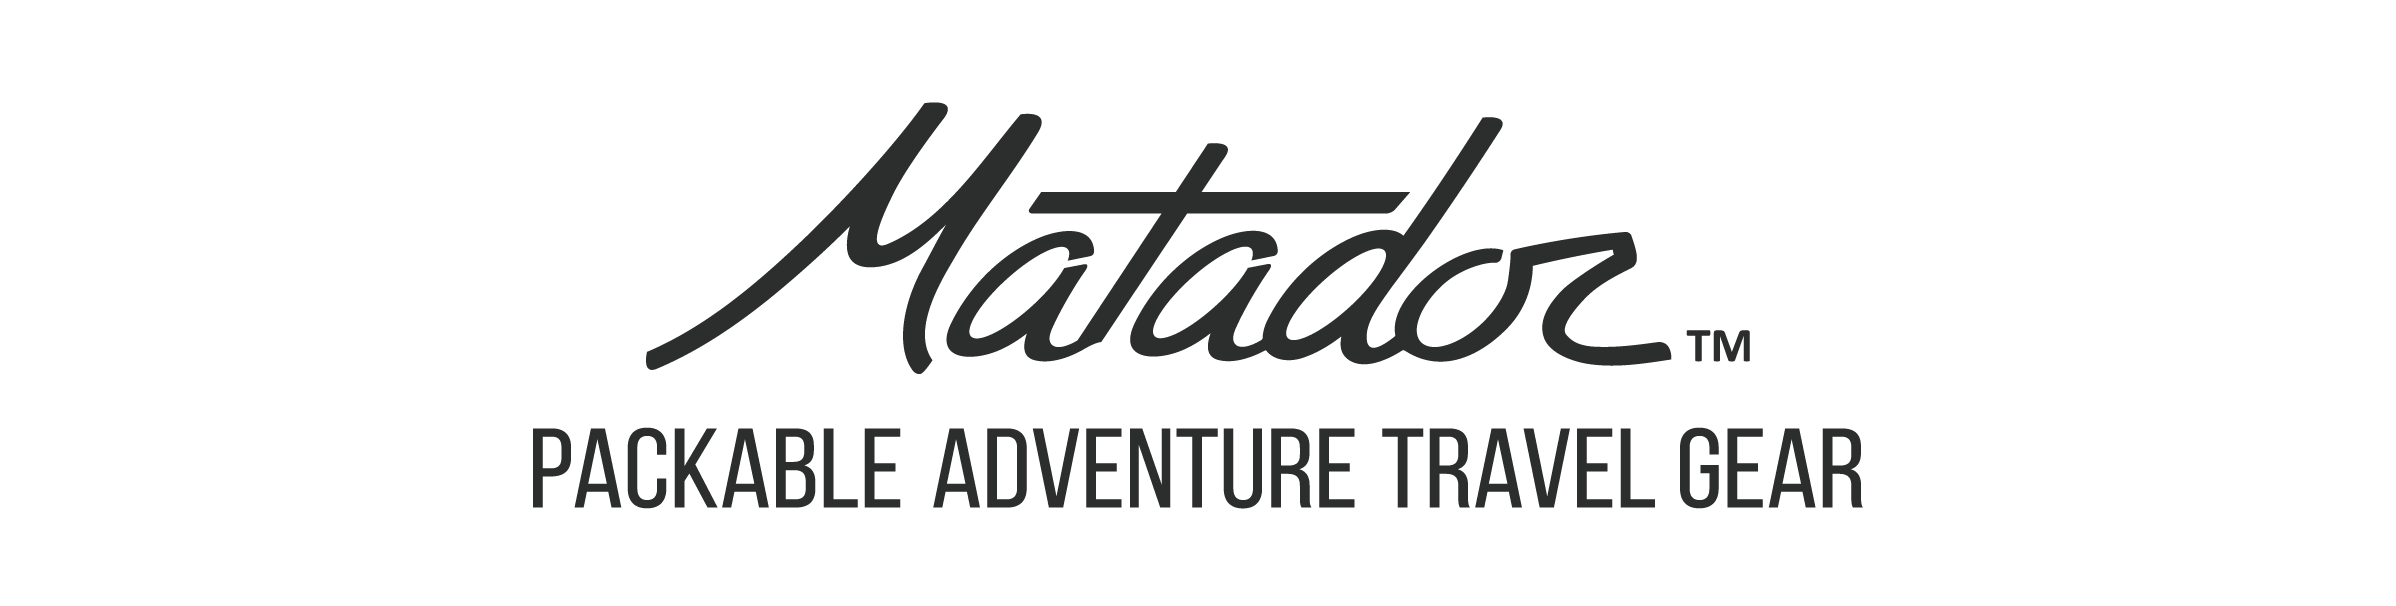 Matador Packable Adventure Gear Coupons